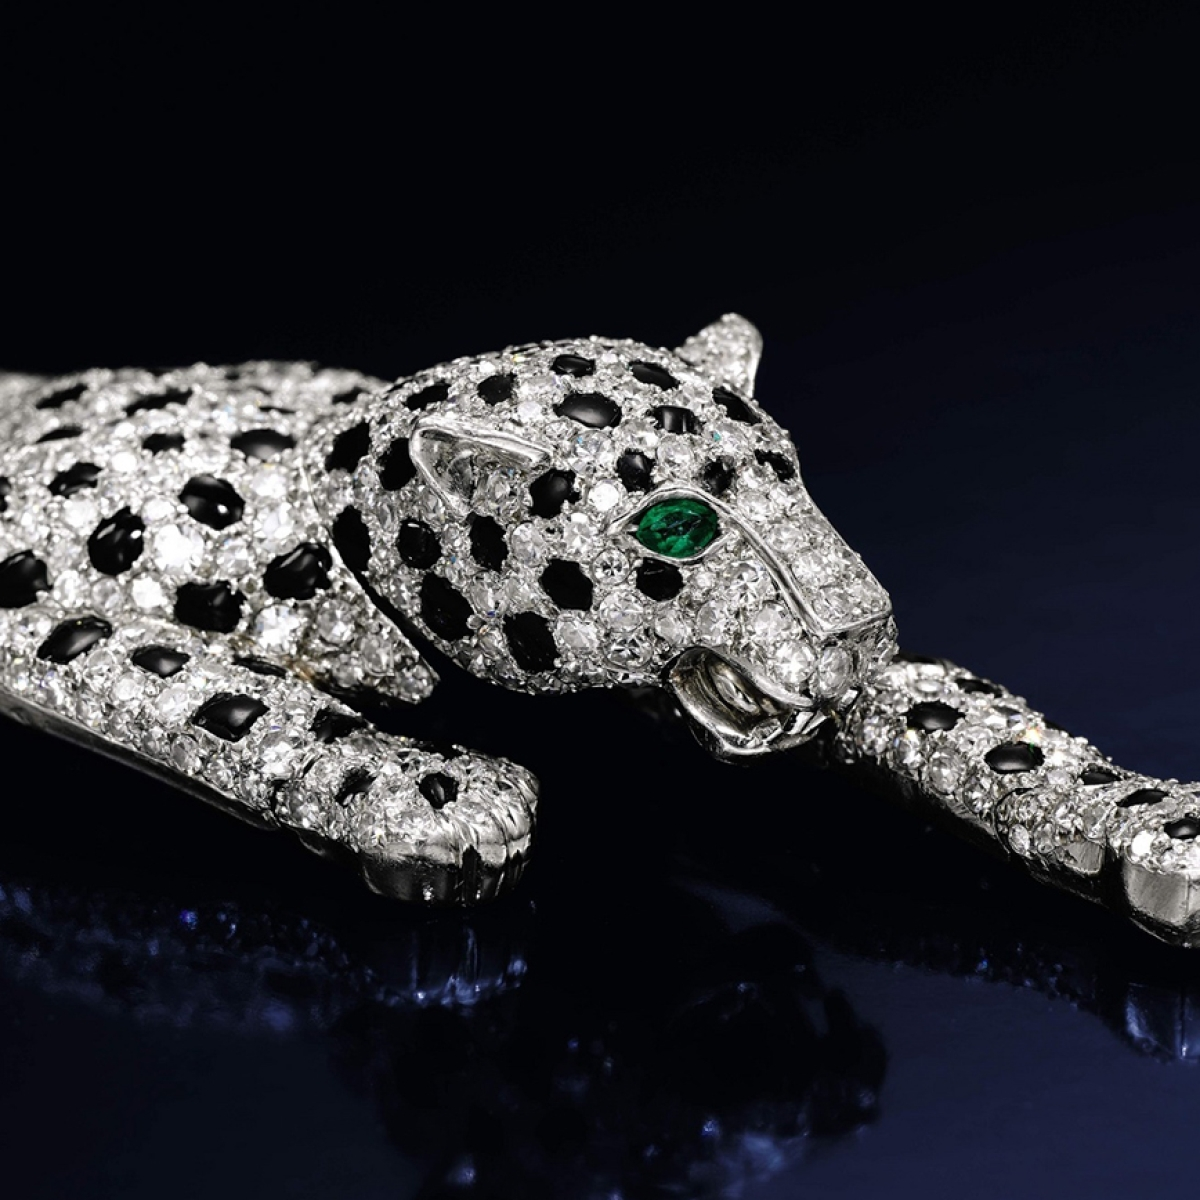 World Art Day 2021 - Check out the most expensive artifacts in the world